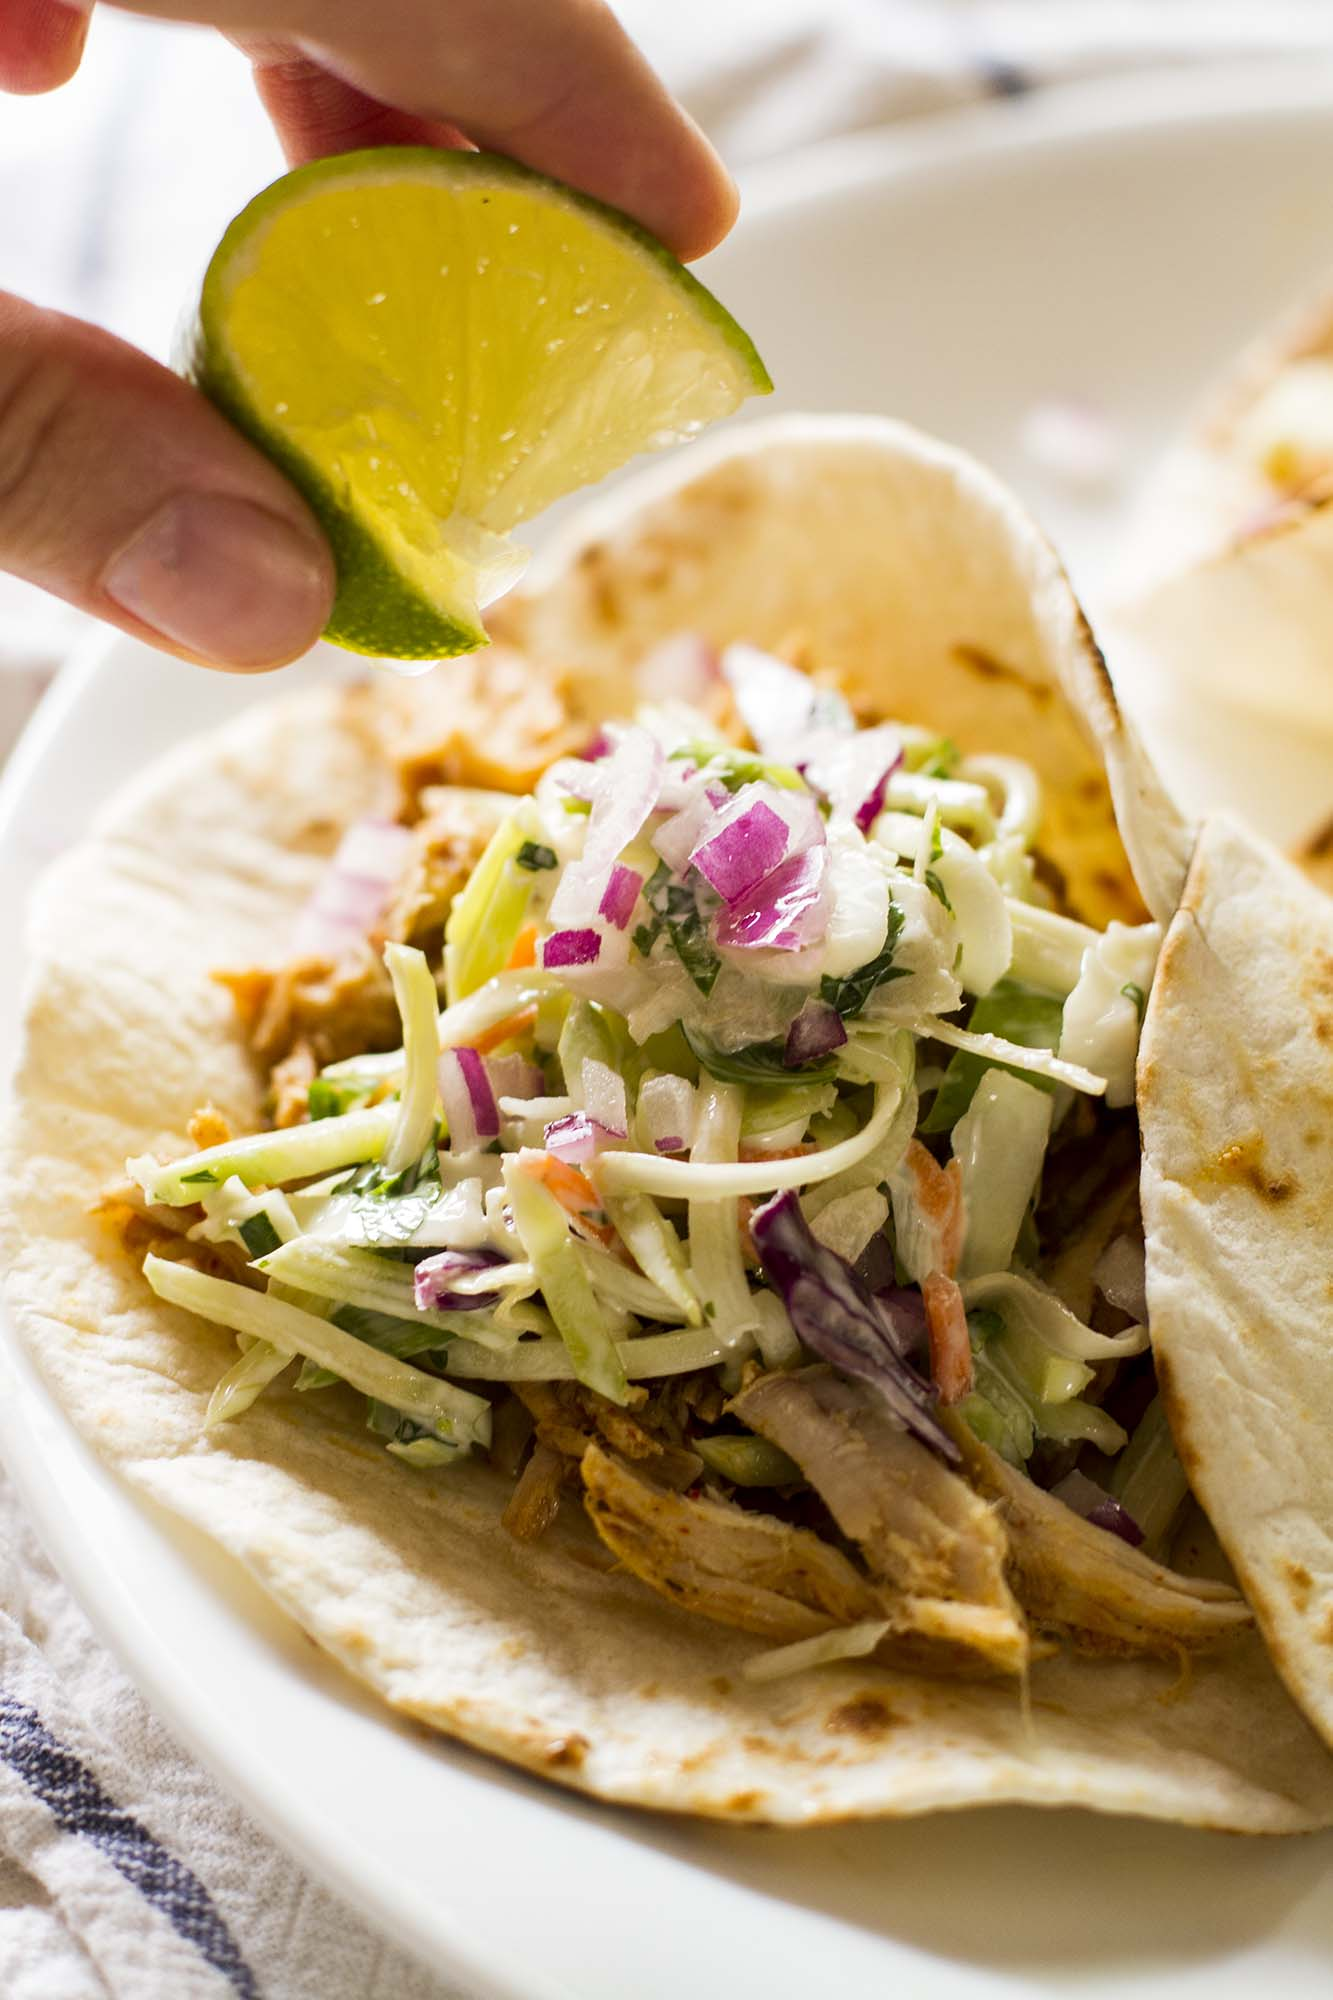 Slow Cooker Green Chile Pork Tacos with Cilantro-Lime Slaw! So easy and yet so much flavor. These will be your new go-to taco night meal! #easydinner #taconight #slowcooker #crockpot @girlversusdough #girlversusdough